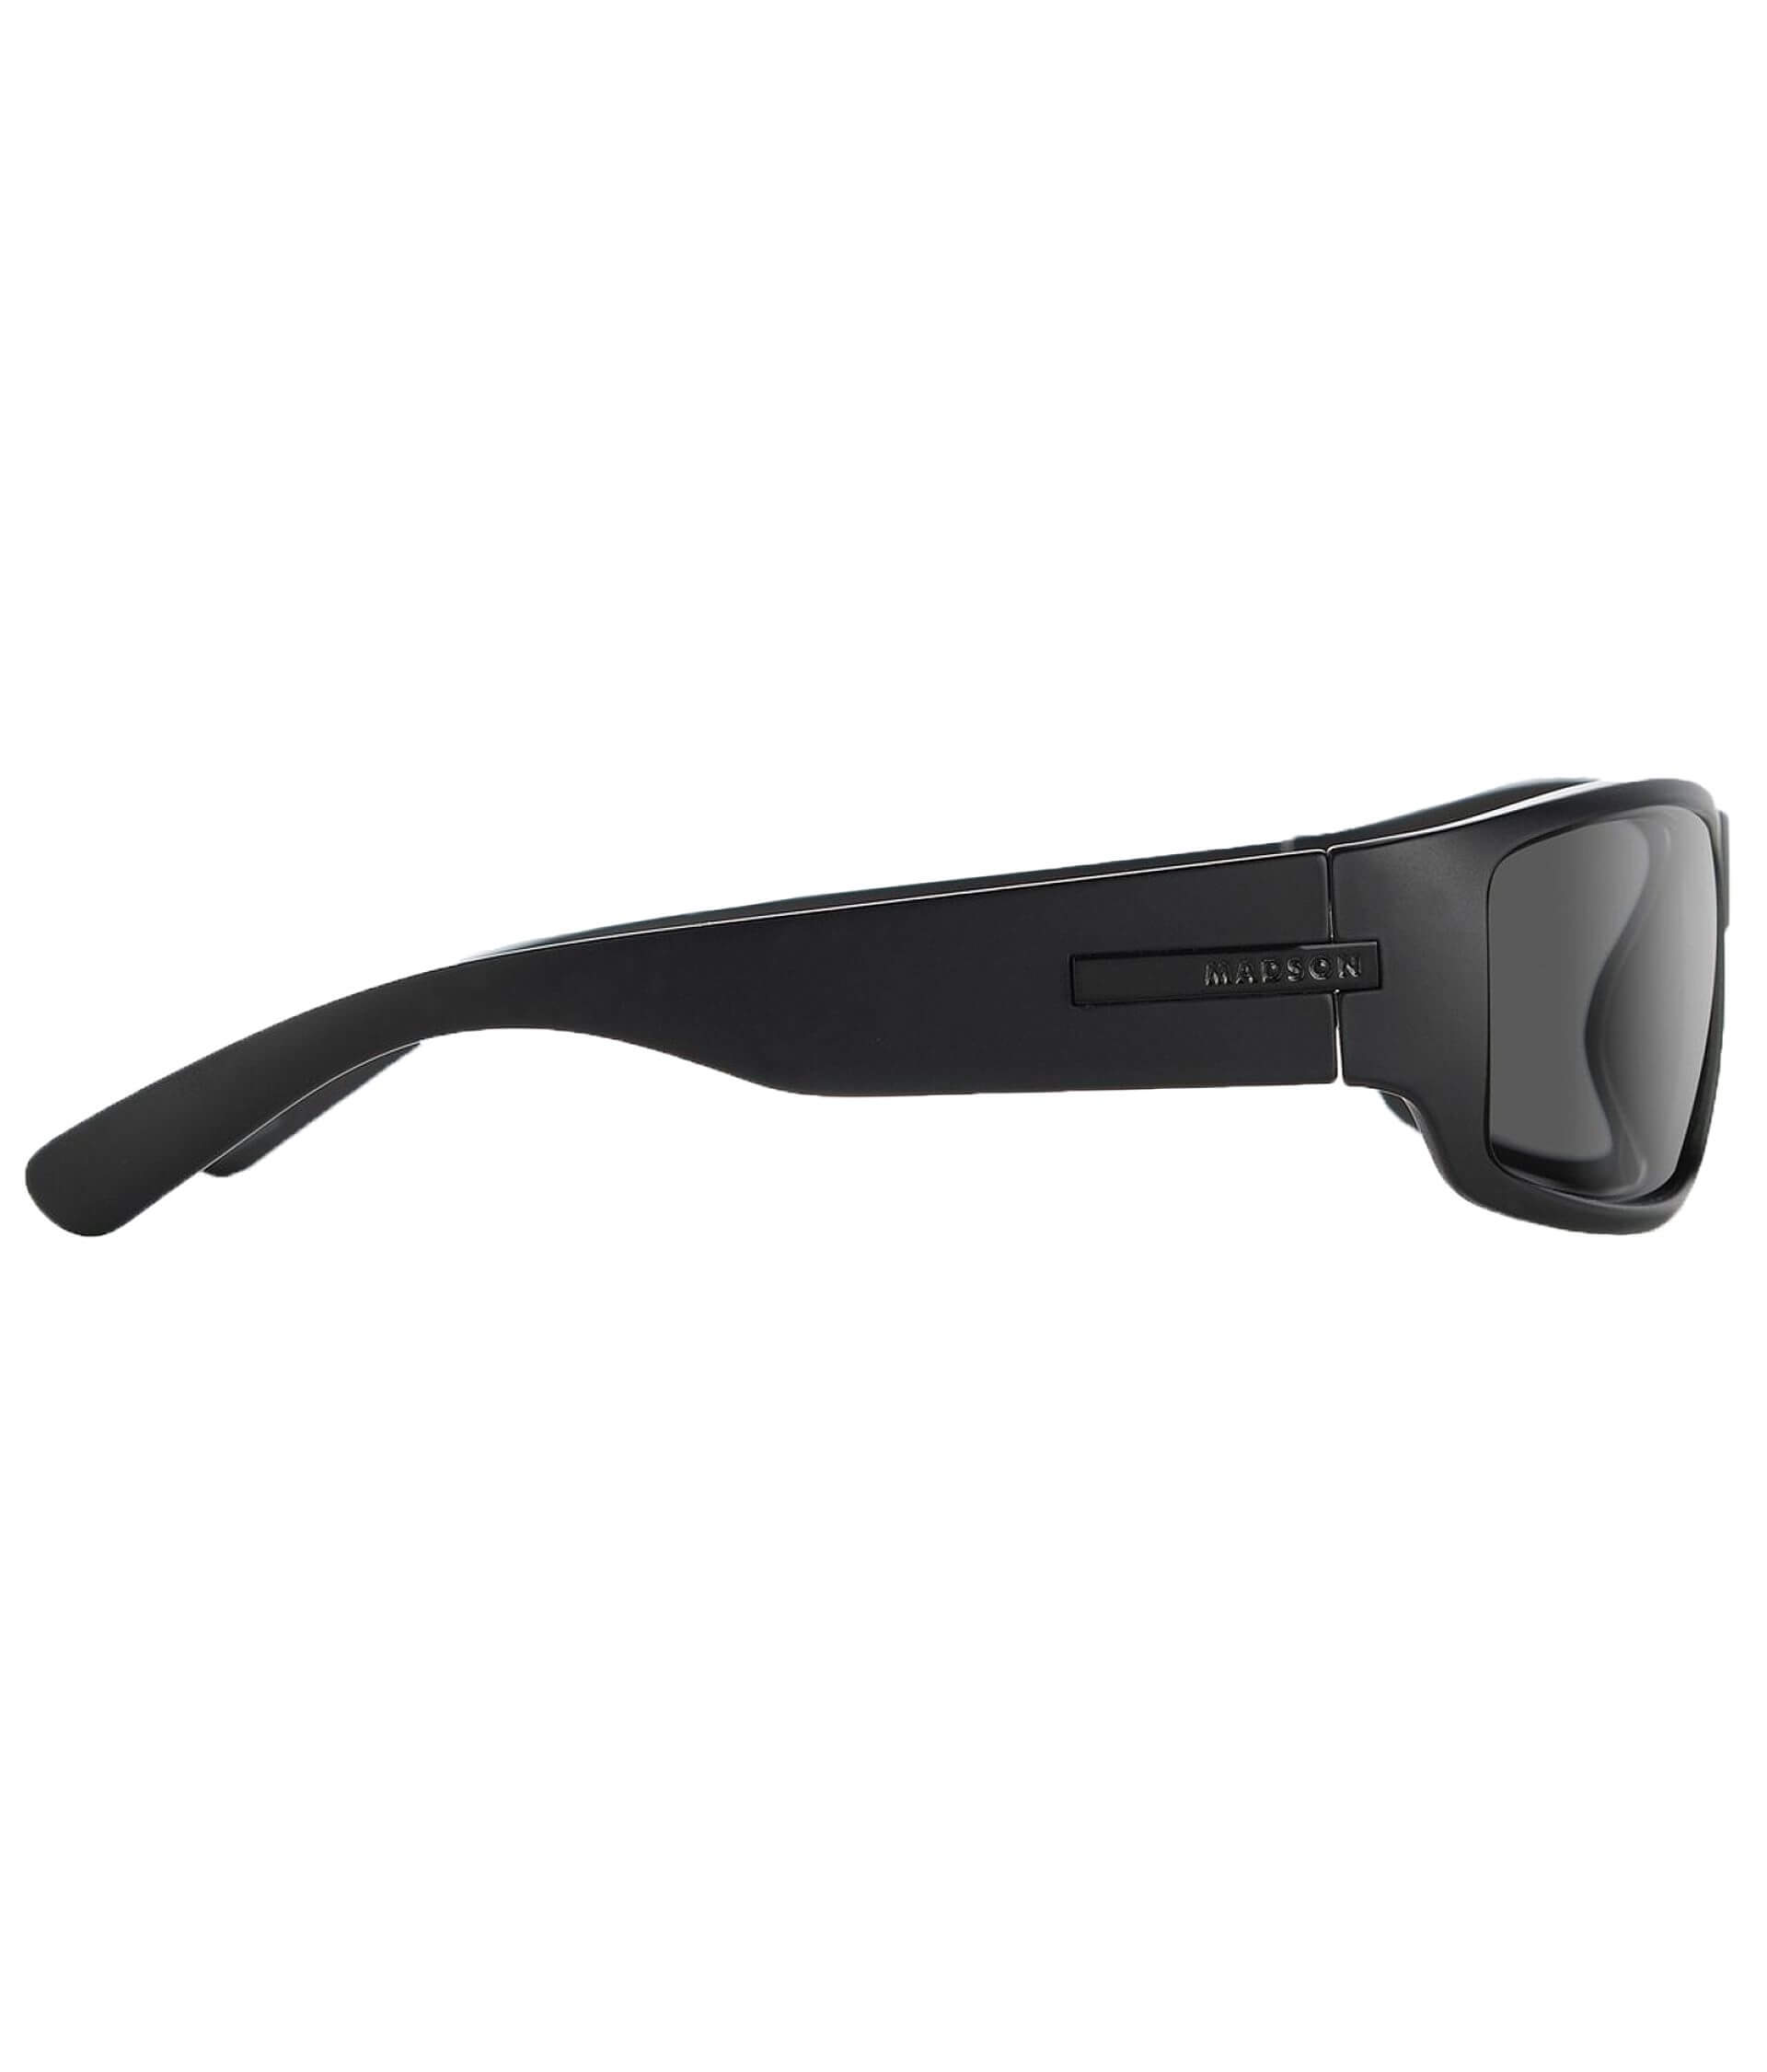 b701ee6200d1d MADSON of AMERICA 101 Polarized Sunglasses - Men s Accessories in ...